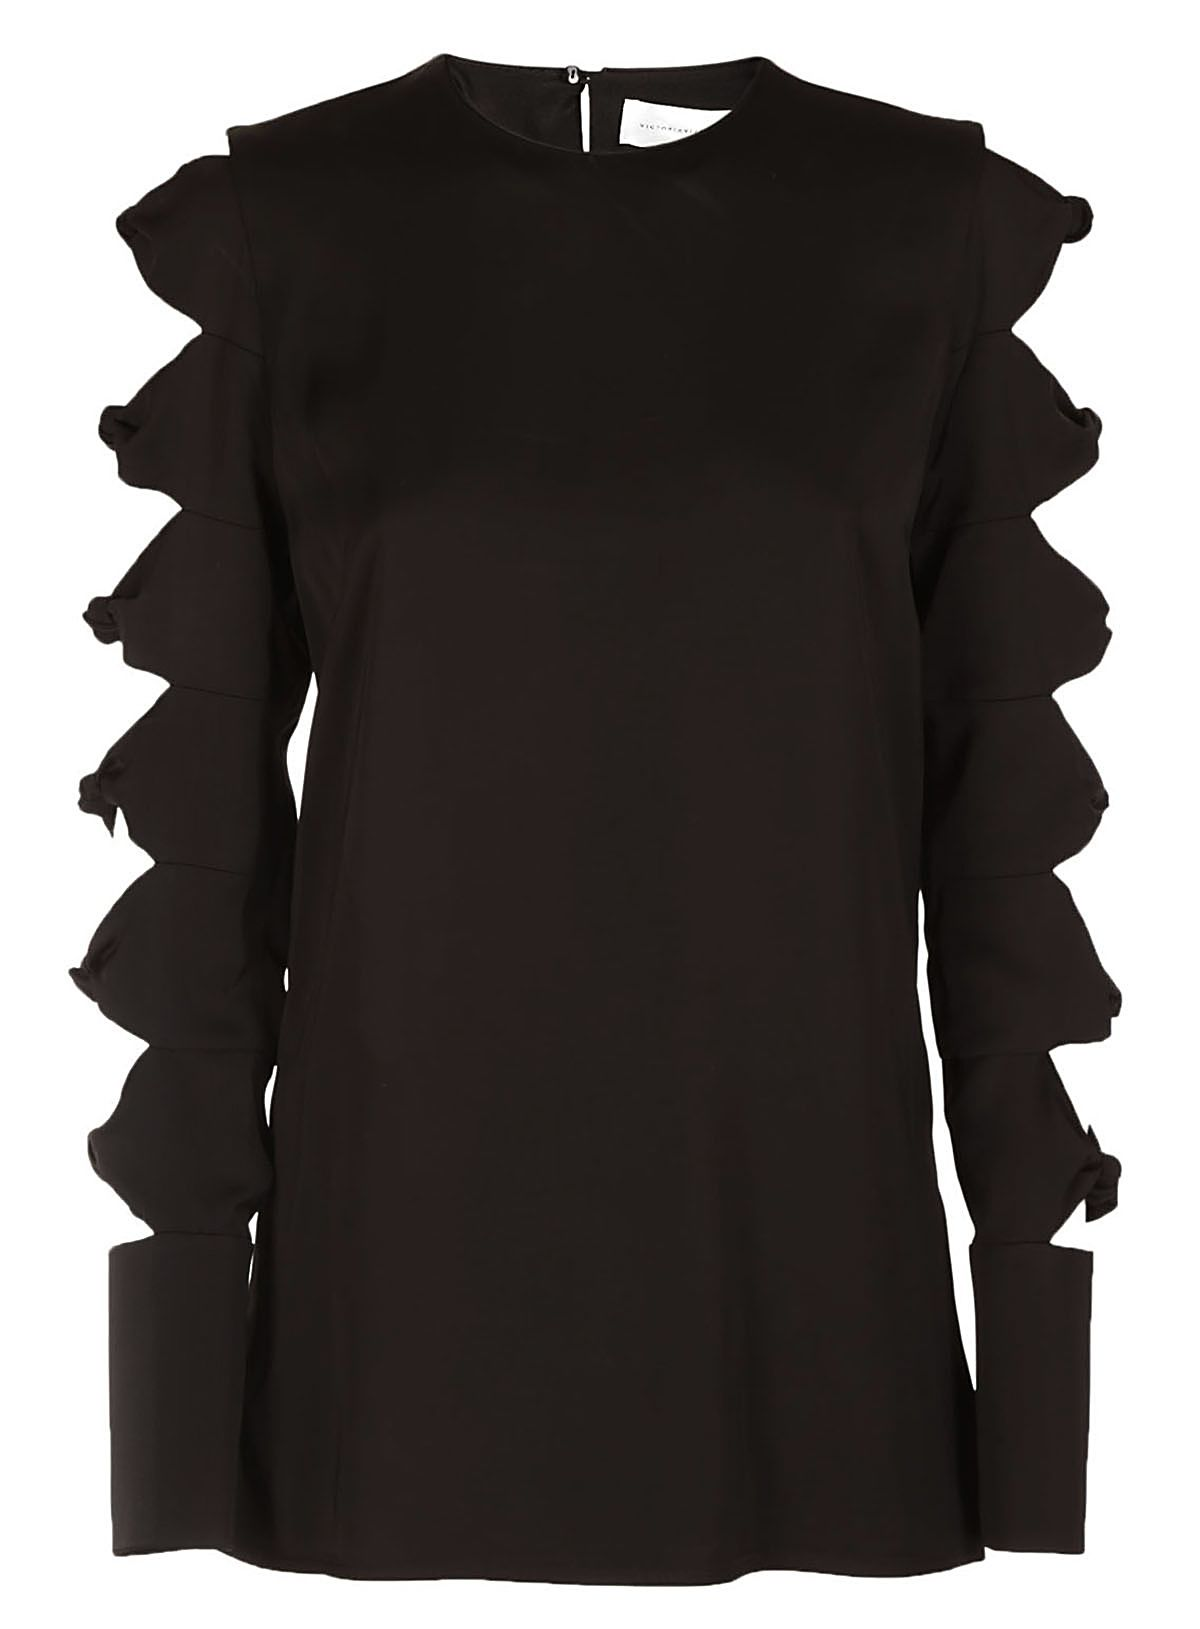 Victoria Beckham Cut-out Detailing Top